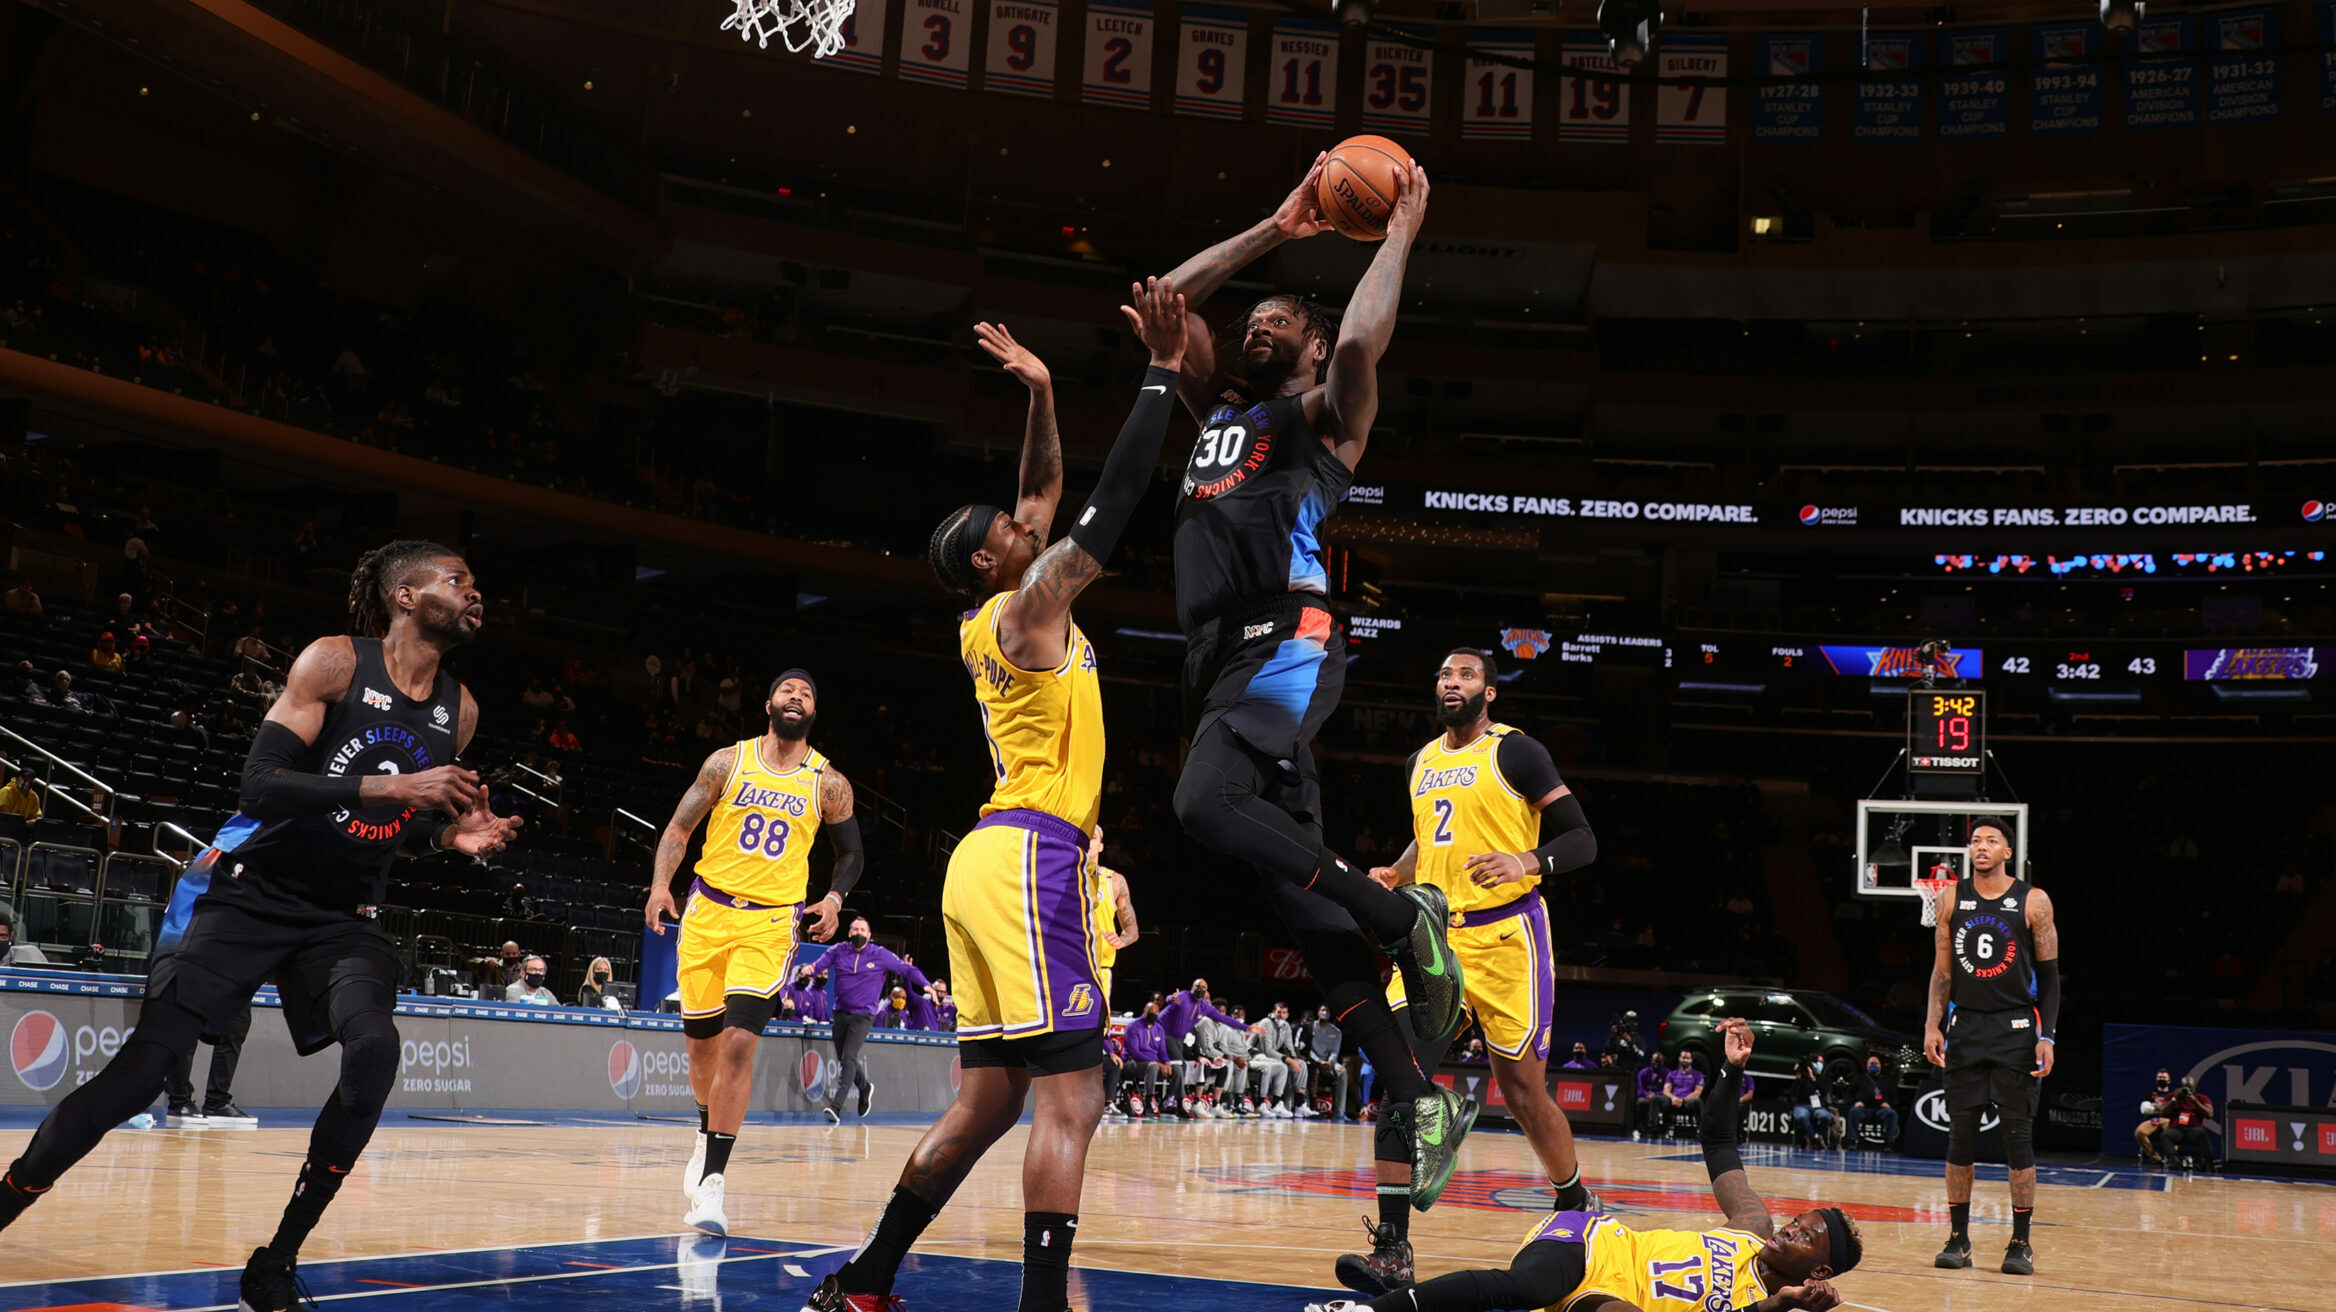 Randle leads Knicks past Lakers for 3rd straight win